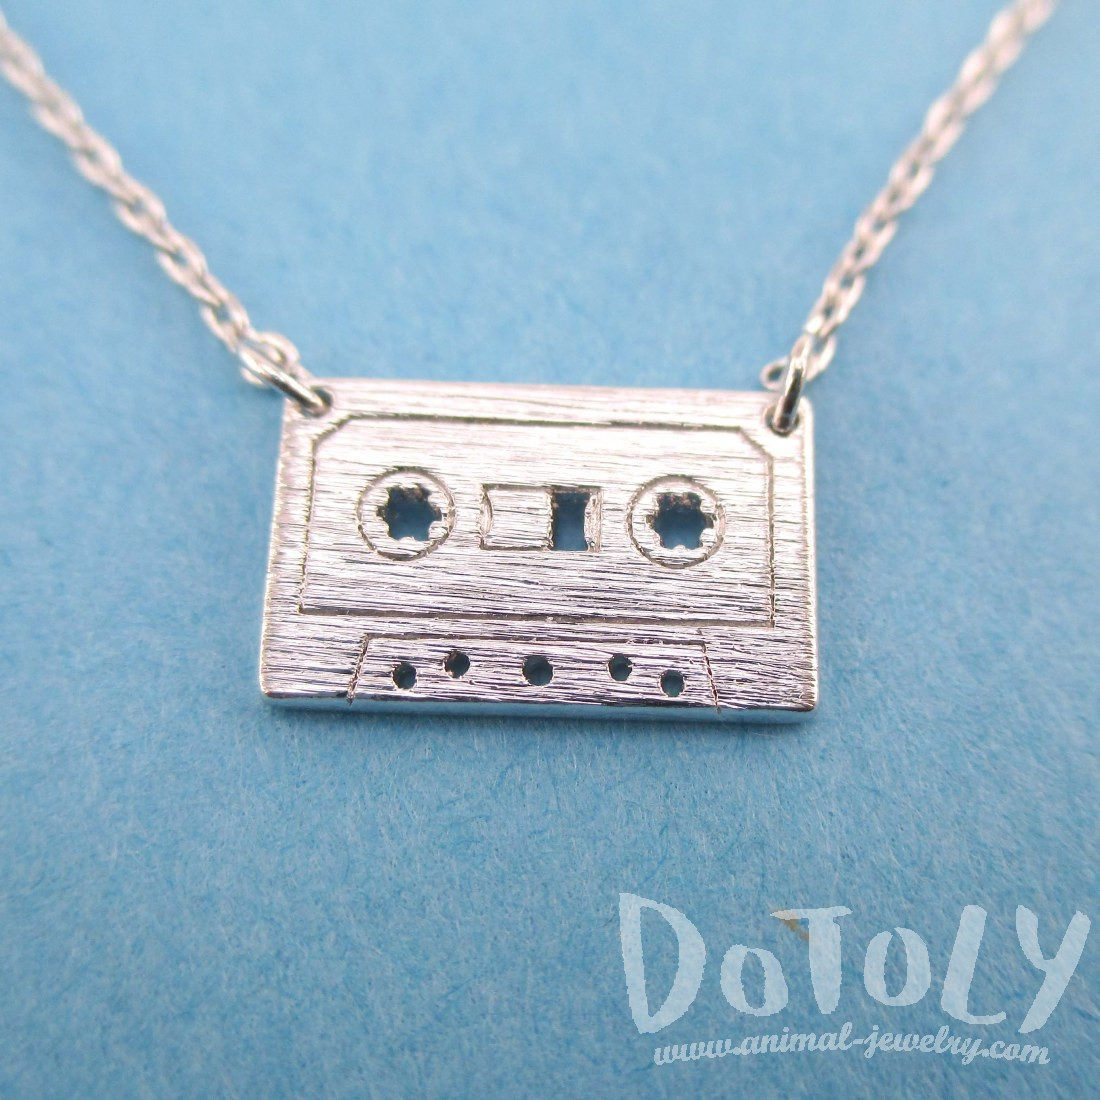 Cassette Mixed Tape Retro Friendship Pendant Necklace in Silver